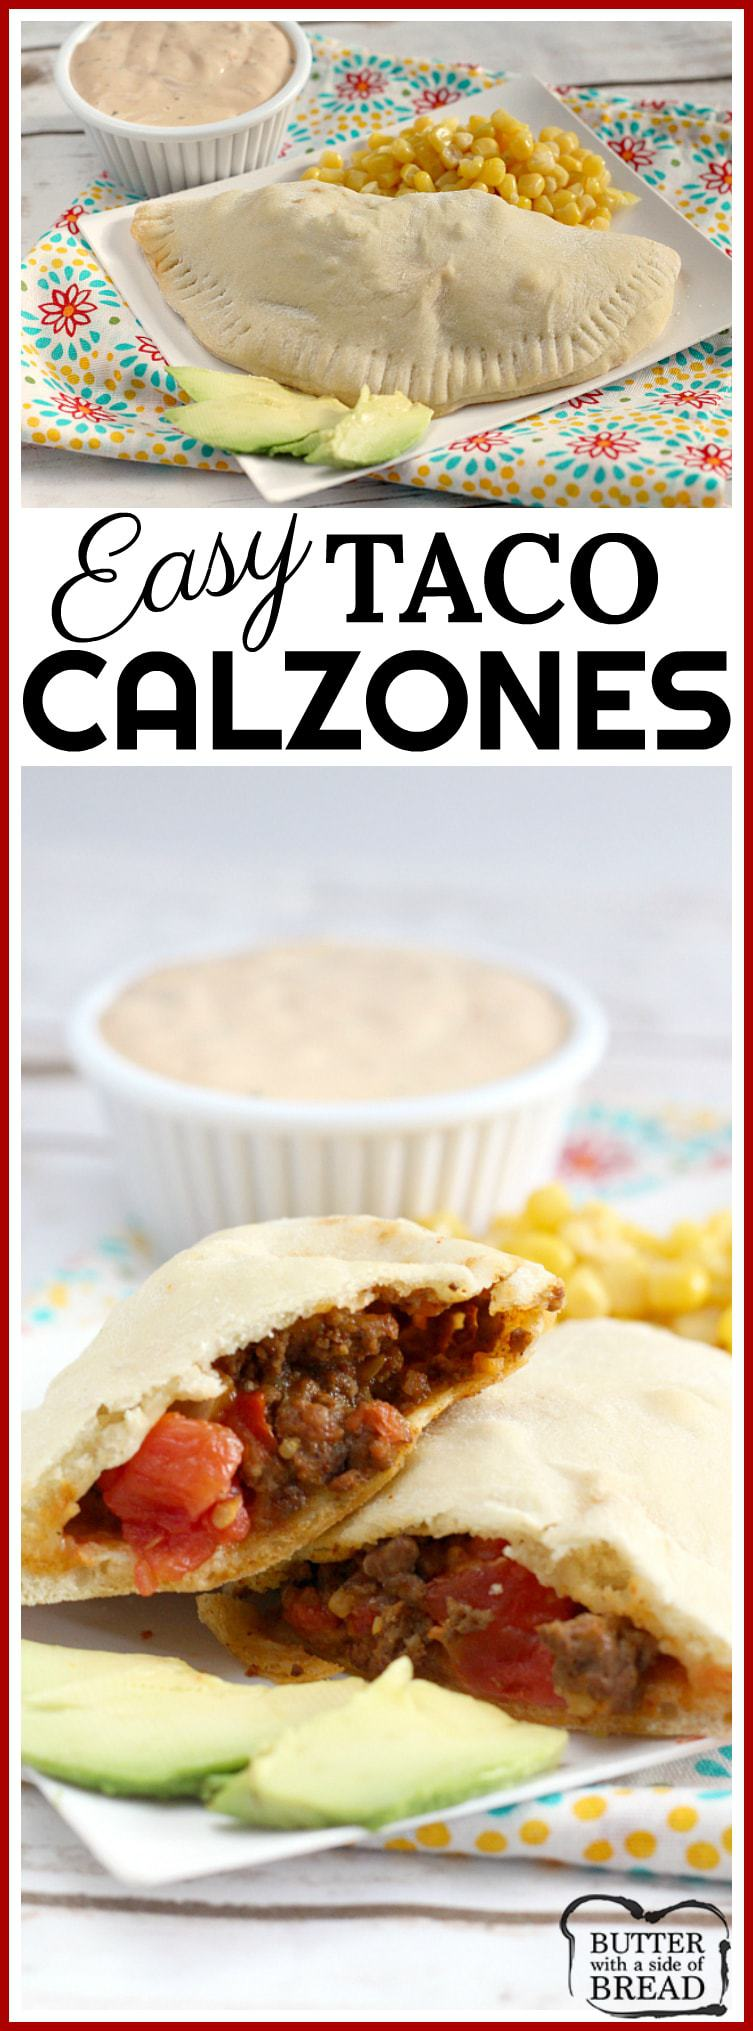 Easy Taco Calzones are made with a simple, homemade crust and then filled with ground beef, diced tomatoes, cheese and onions. Easy #taco #calzones #recipe for #dinner from Butter With A Side of Bread #maindish #easydinner #easy #cooking #food